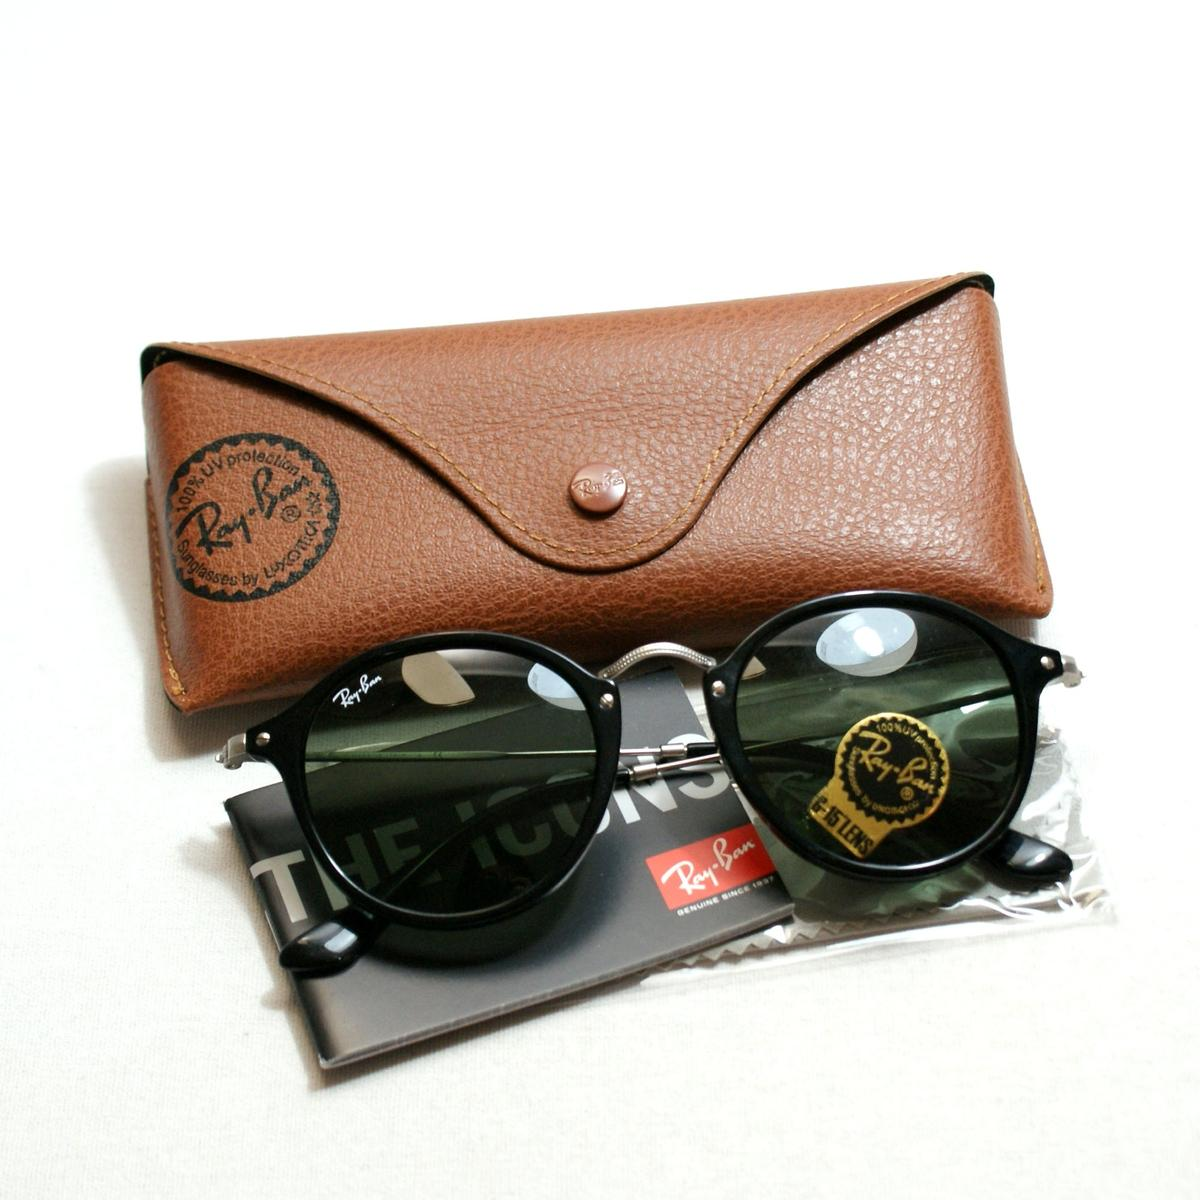 41661b6ce5 ... rb2447 1160 49 2dfc7 be012  spain ray ban round fleck black sunglasses.  click thumbnail to zoom. found 294b2 e8a50